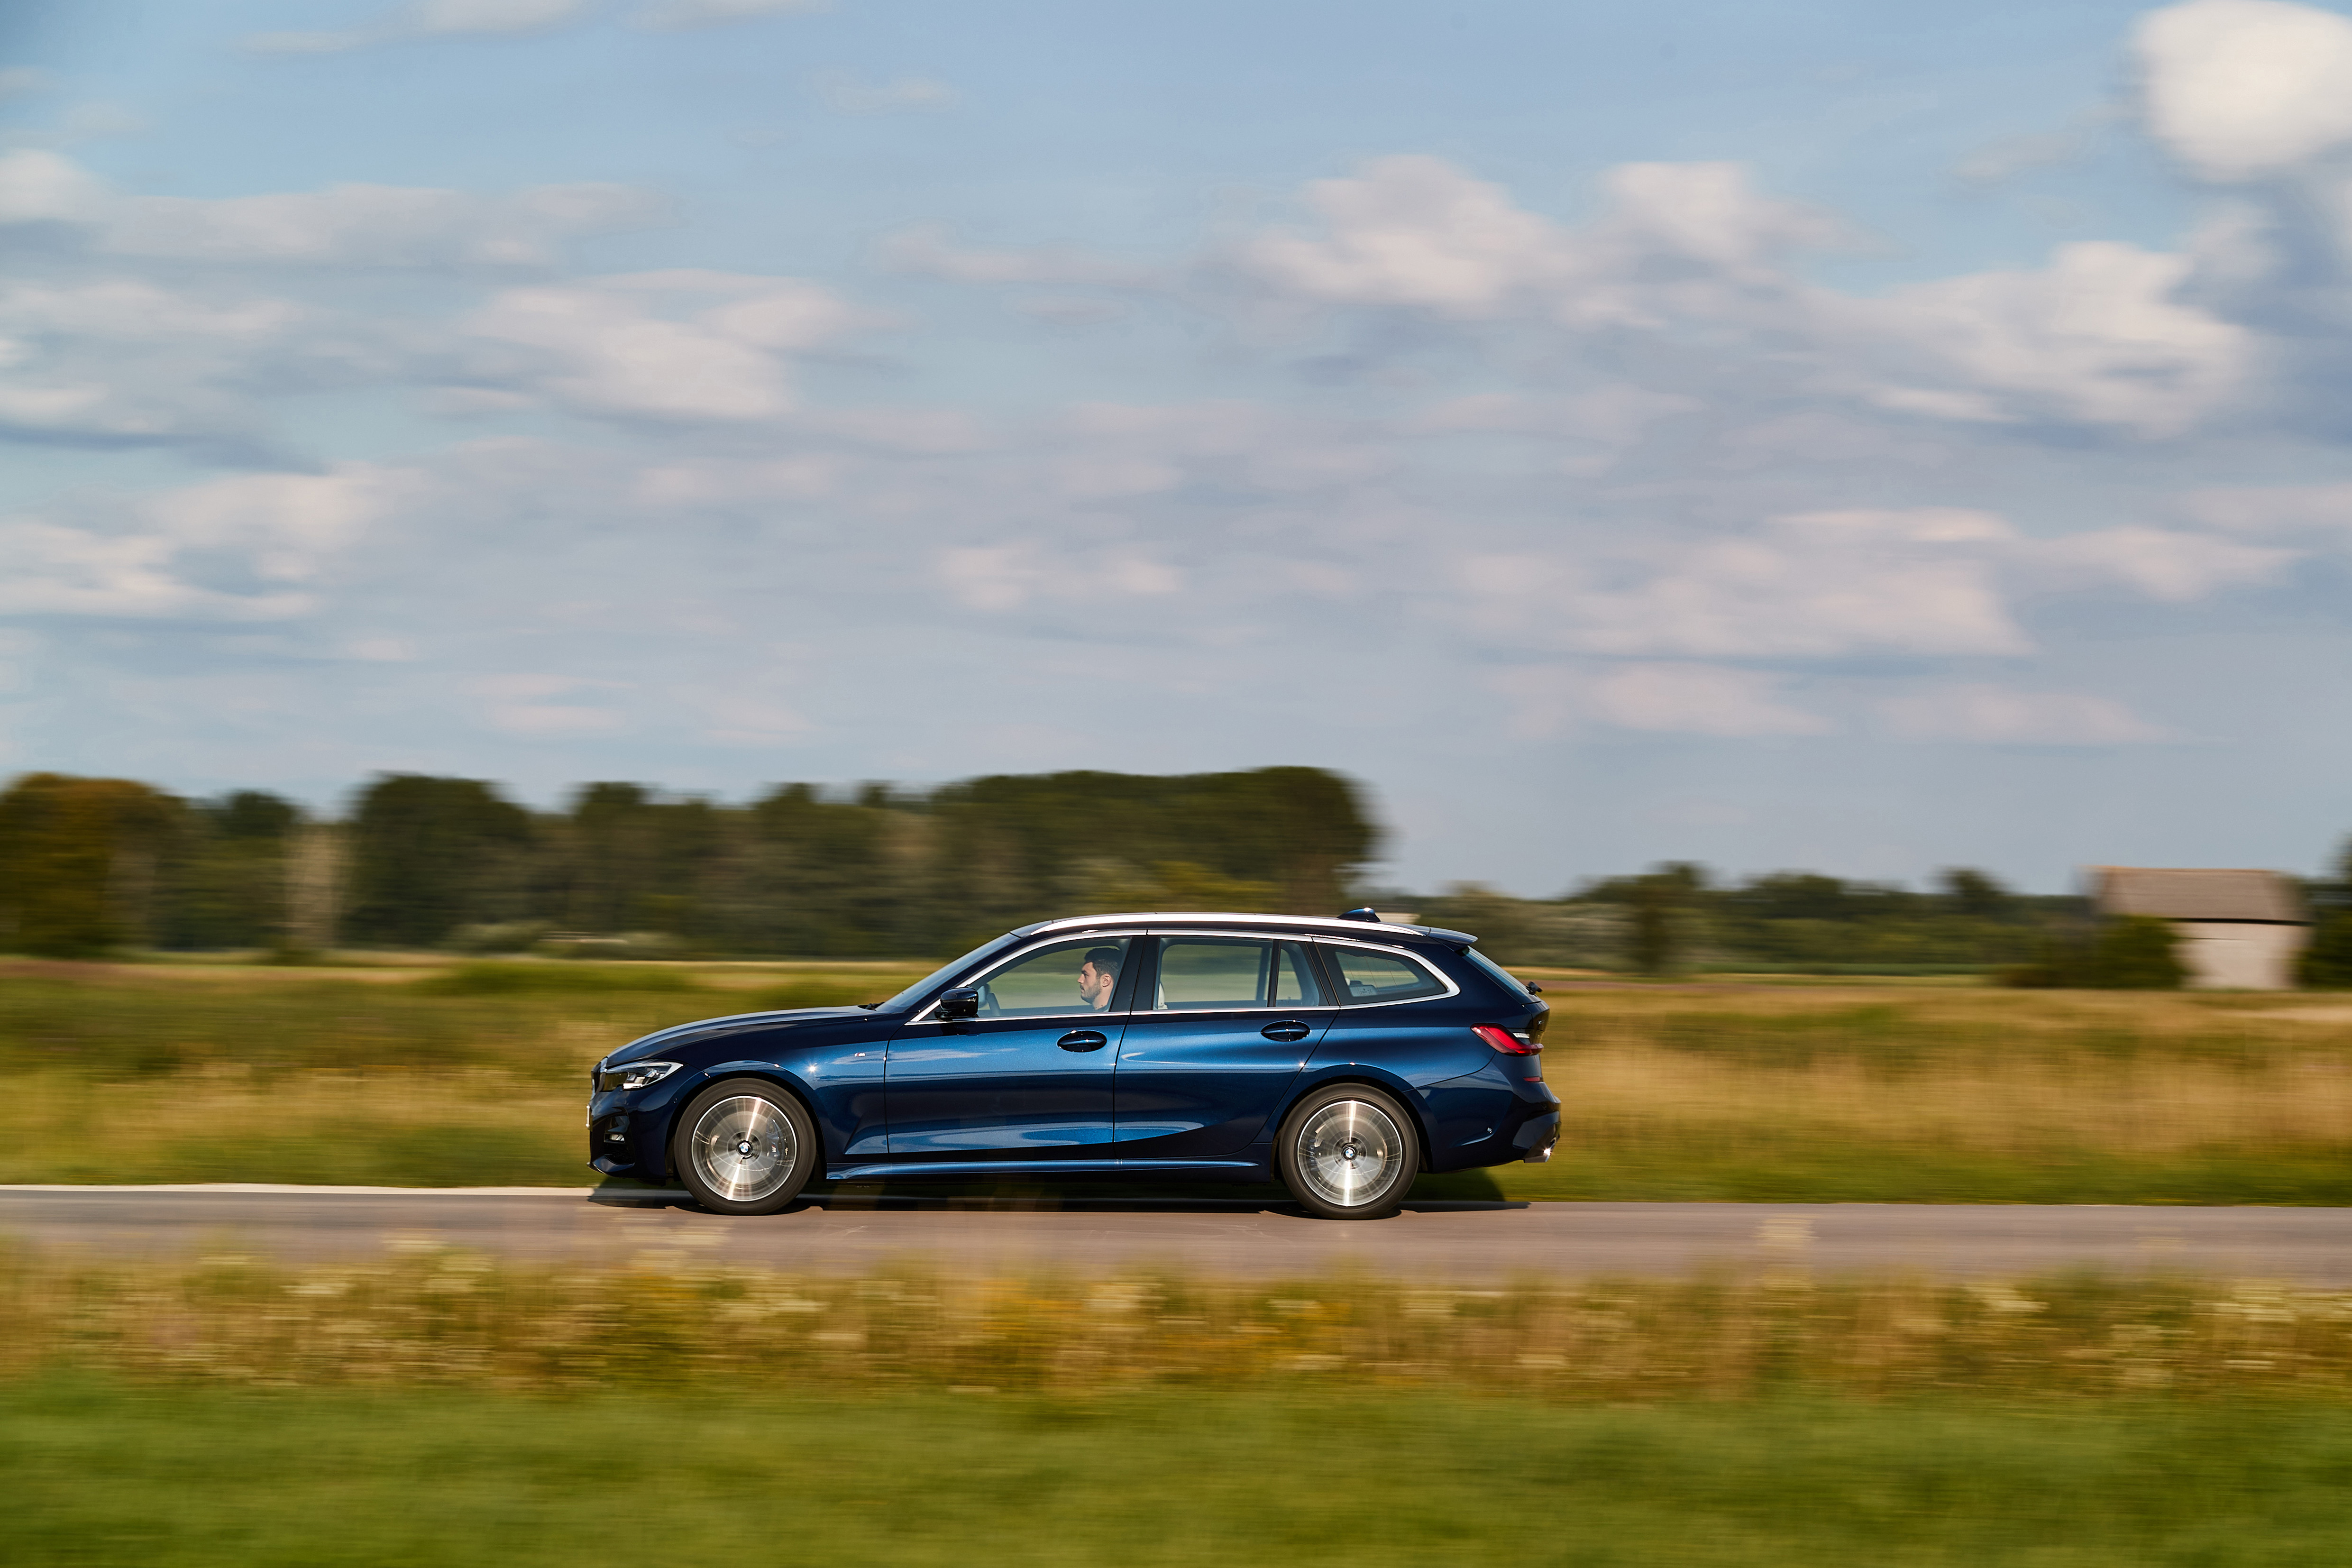 The Touring is a more practical version of the regular 3 Series saloon